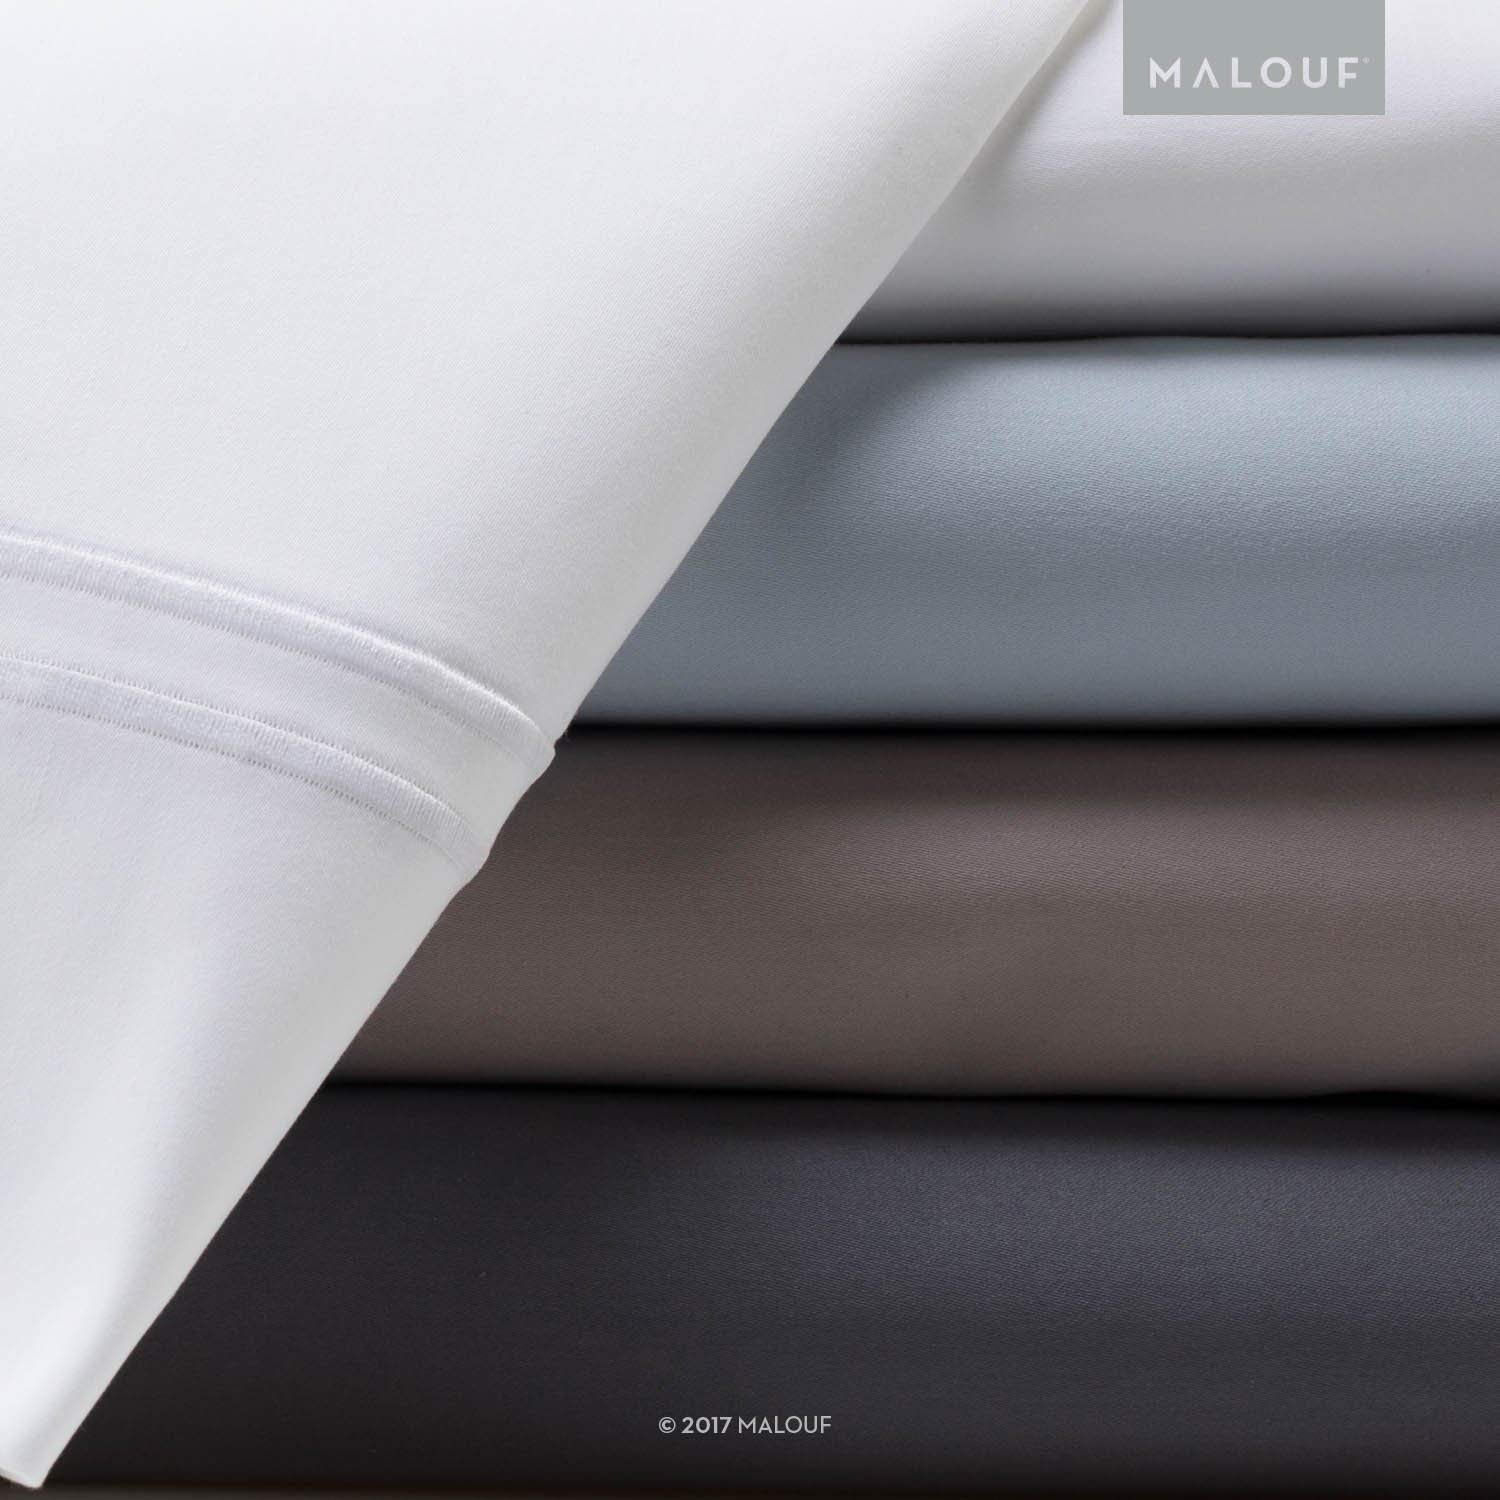 Malouf's Supima Cotton Sheet Set - Best 600 Thread Count Sheets